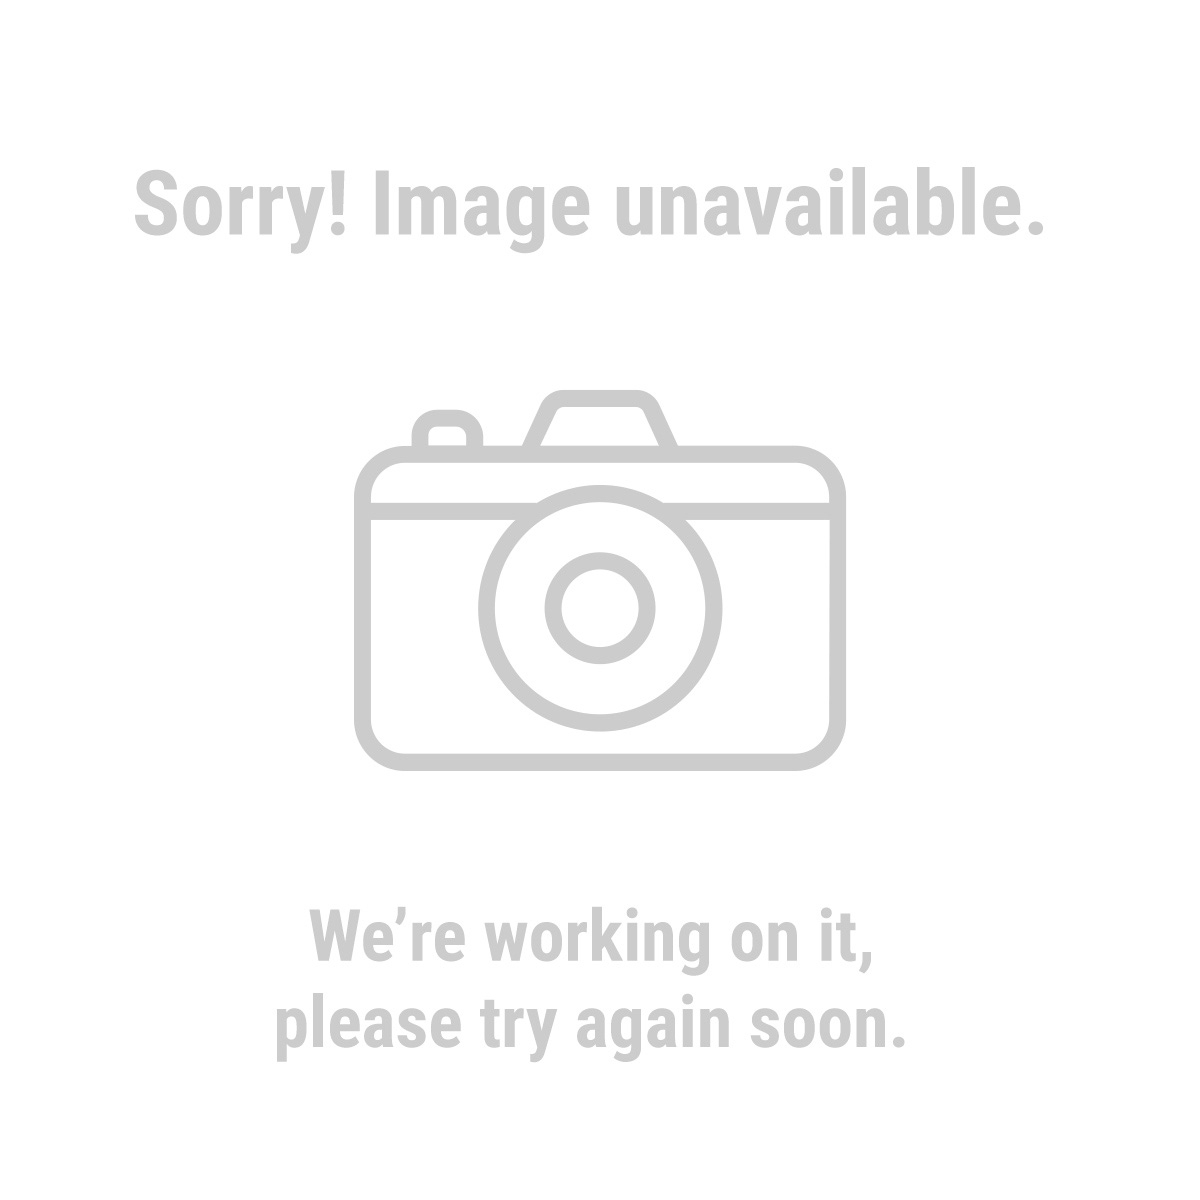 10 Piece 3/8 in. Drive SAE Color Coded Socket Set